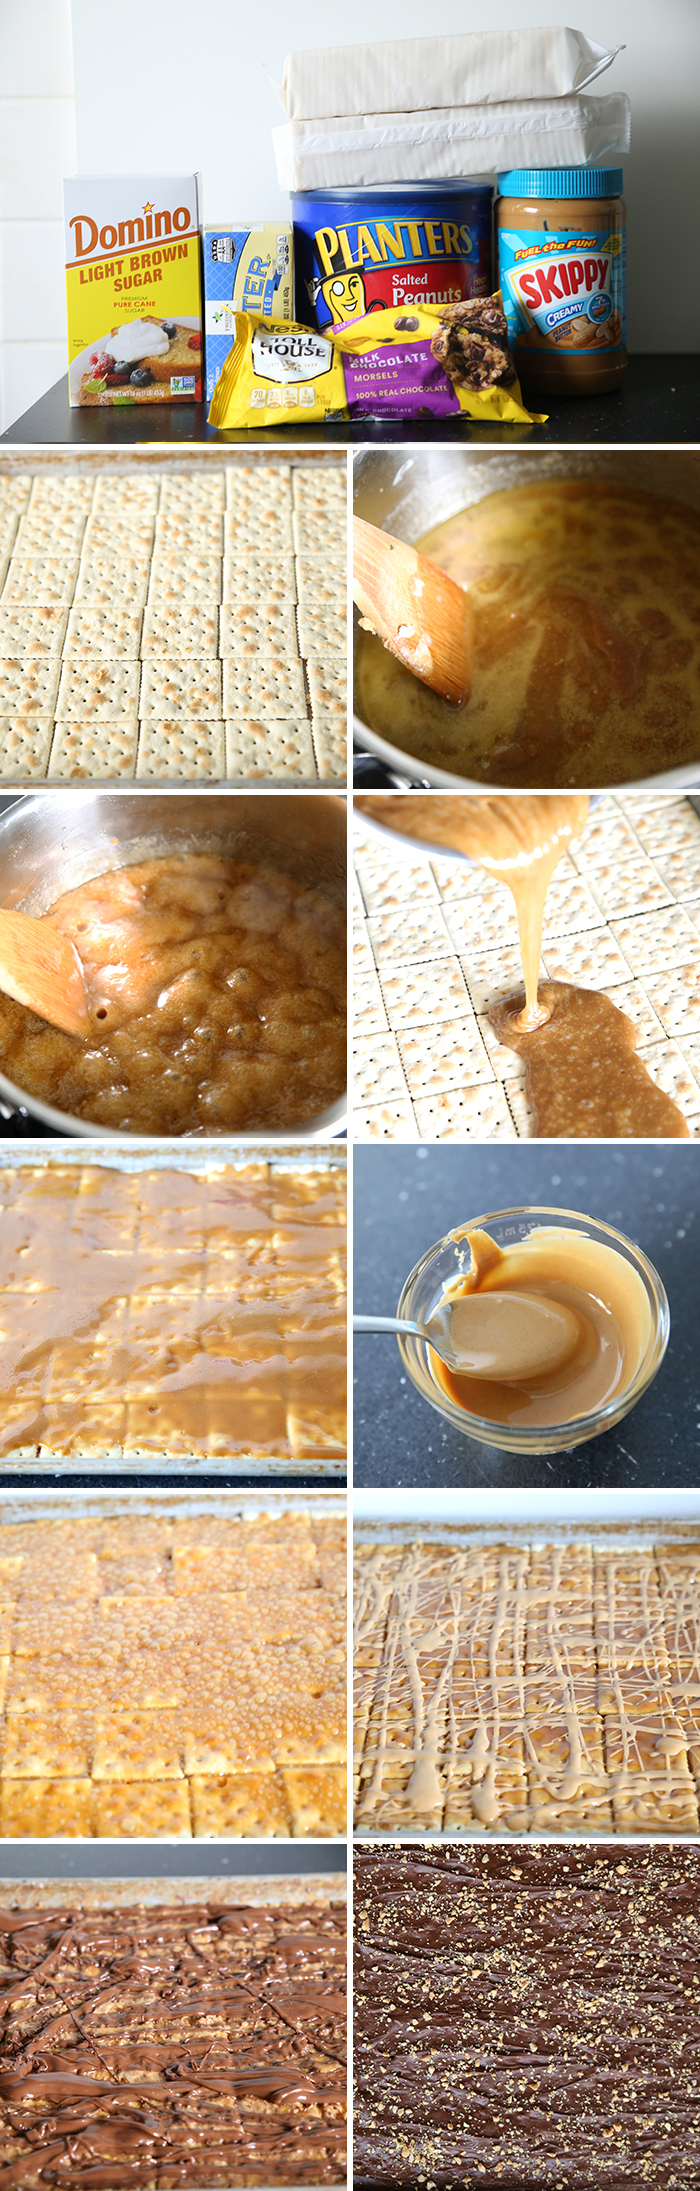 step by step pictures for how to make the best christmas crack soda cracker candy. there are 11 pictures in the collage